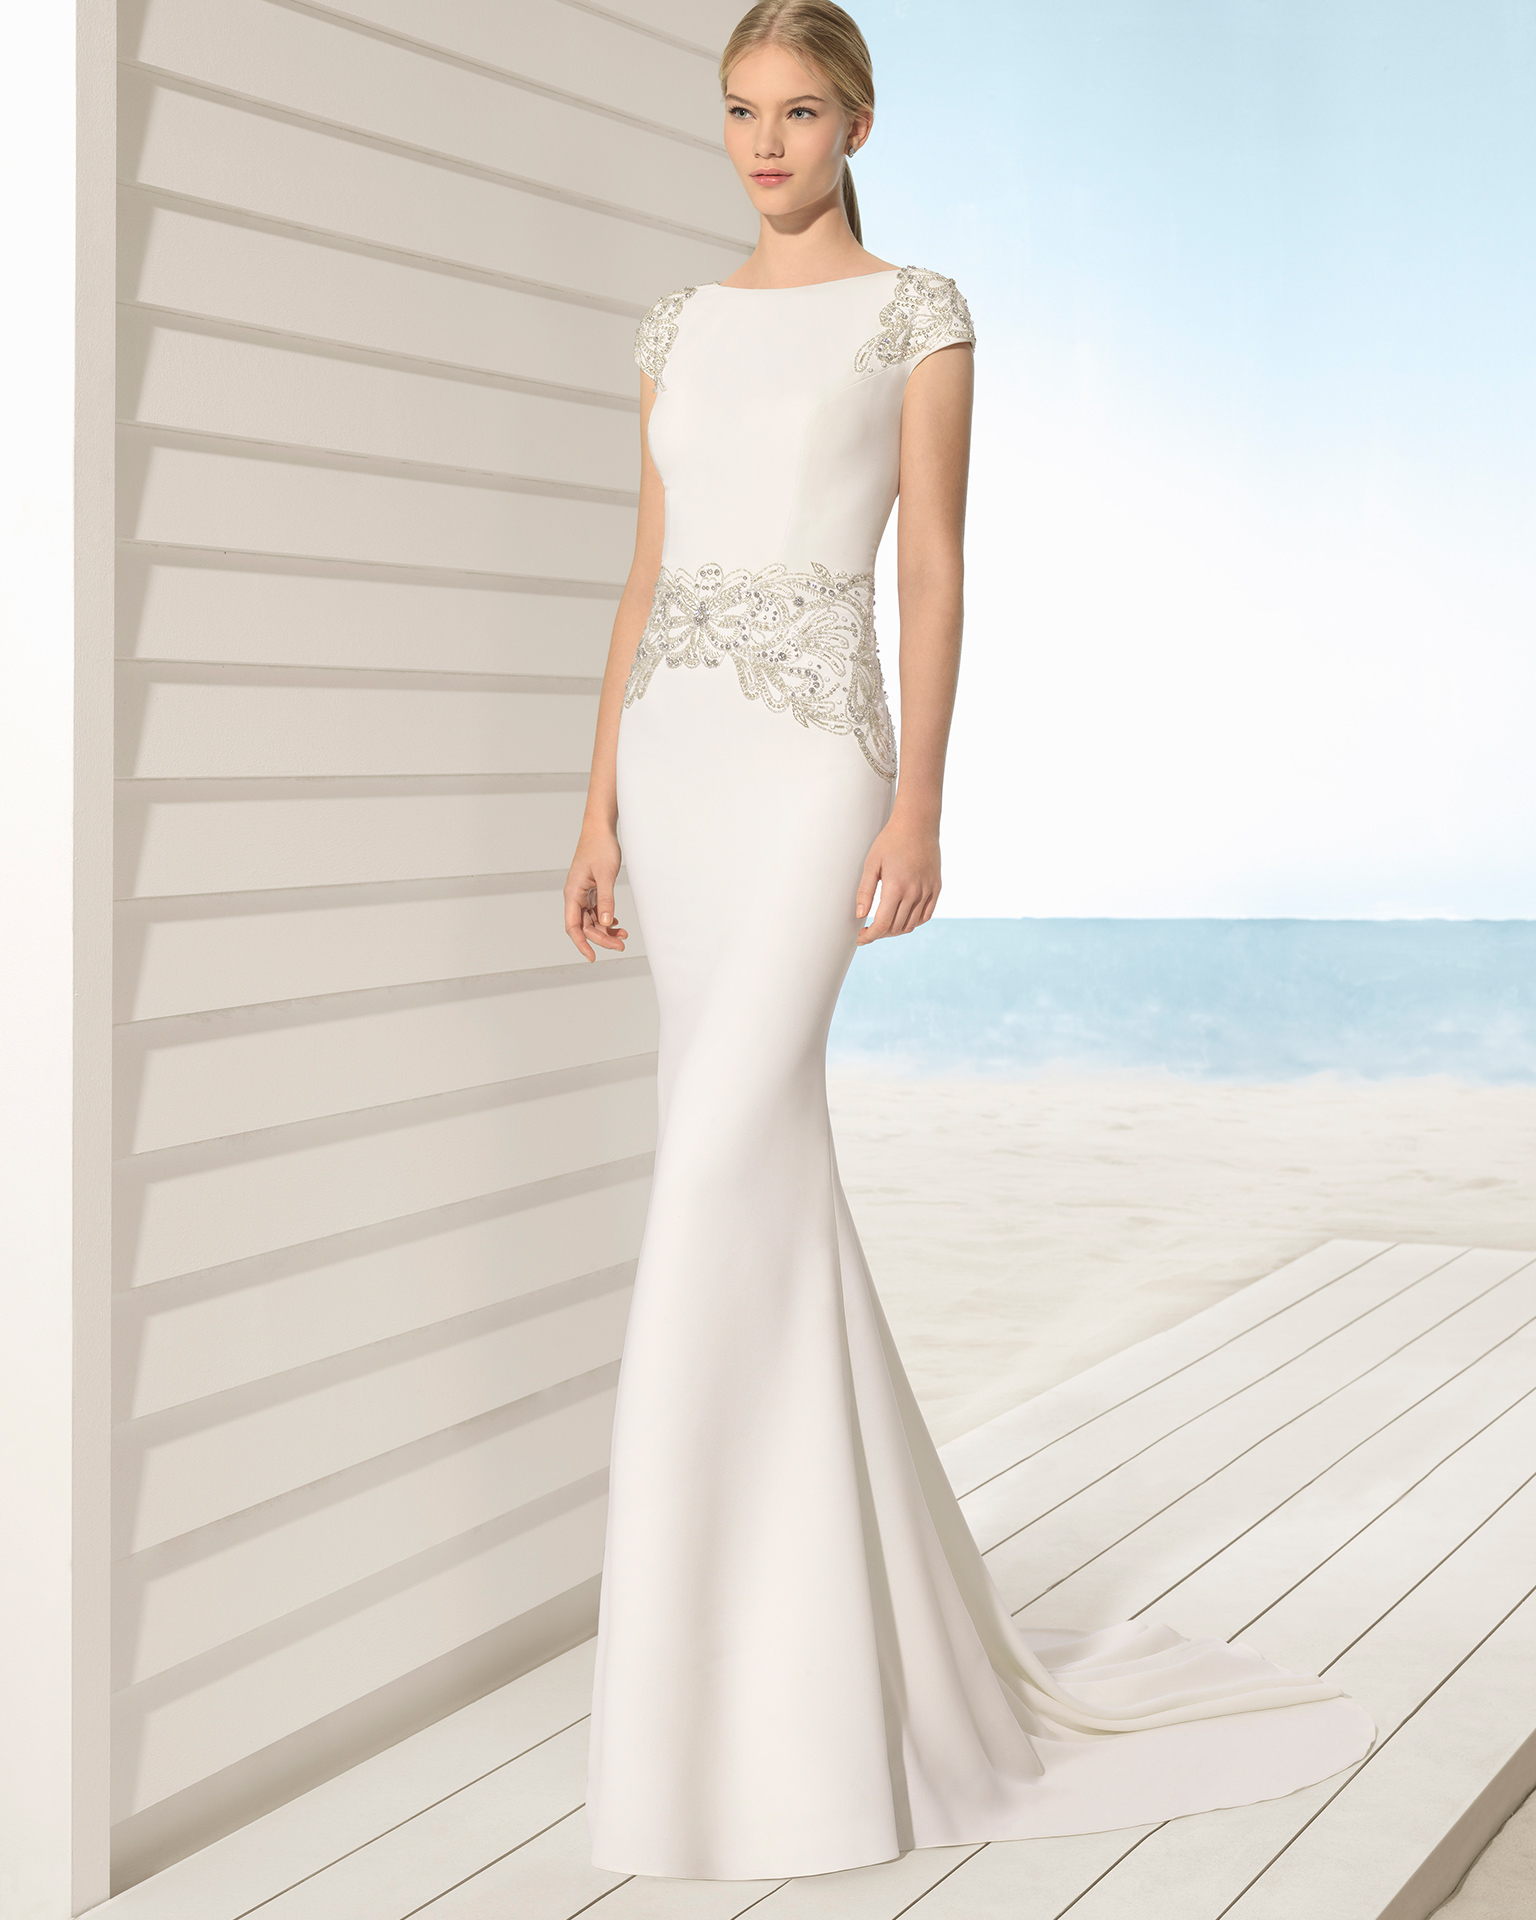 Mermaid-style crepe wedding dress with short sleeves, bateau neckline and low back with beadwork detail, in natural/gold.